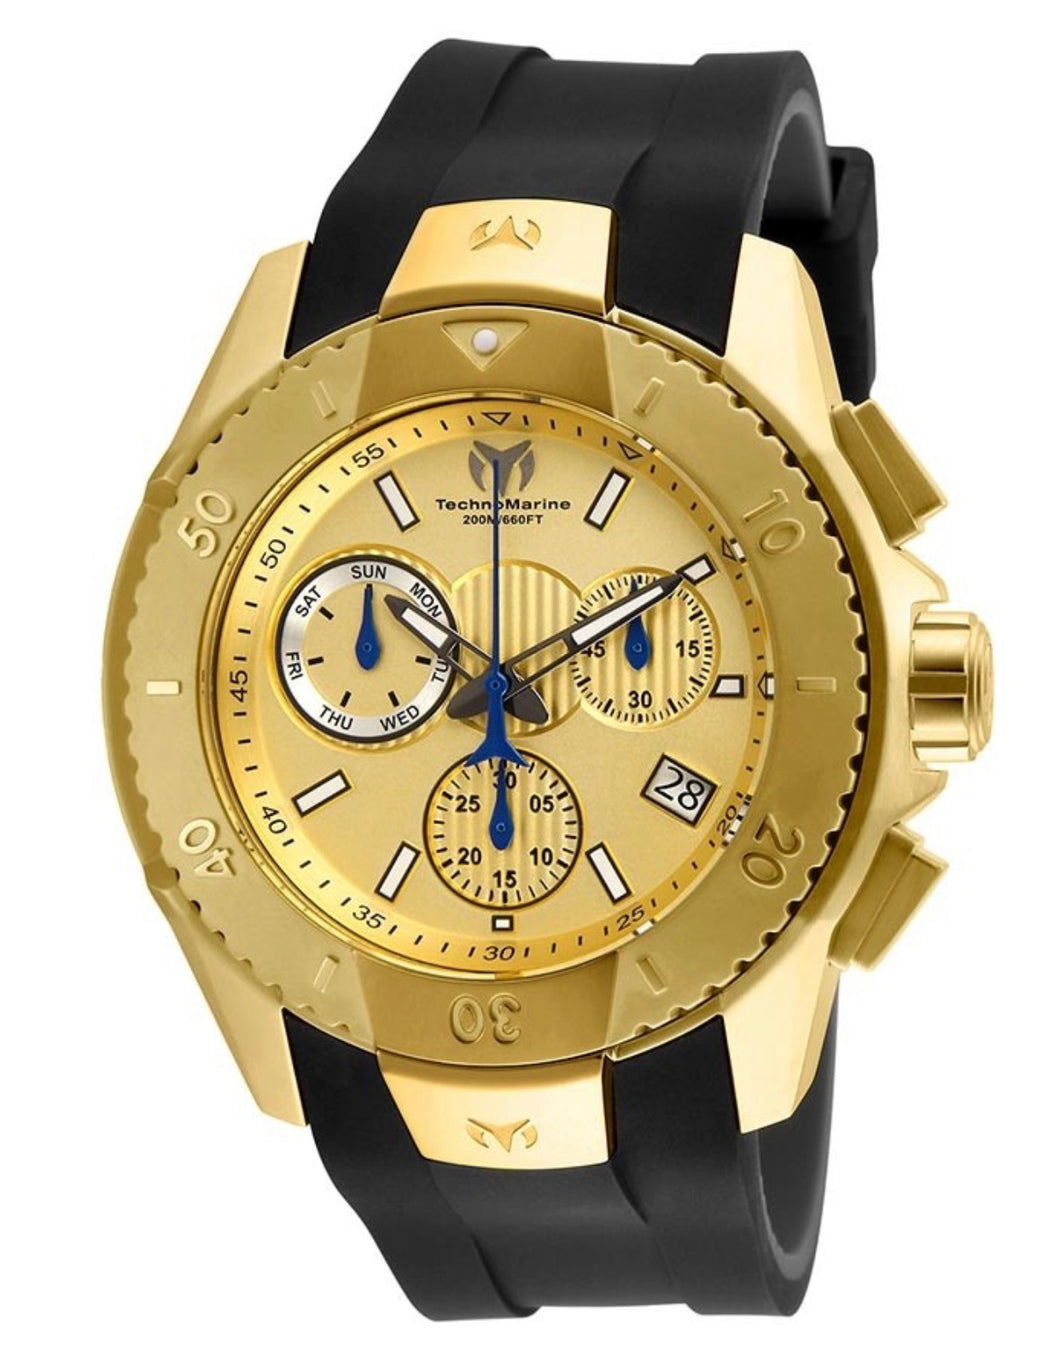 TECHNOMARINE UF6 MENS 48 STAINLESS STEEL CASE GOLD DIAL - MODEL TM-617001 - Boutique Watches & More